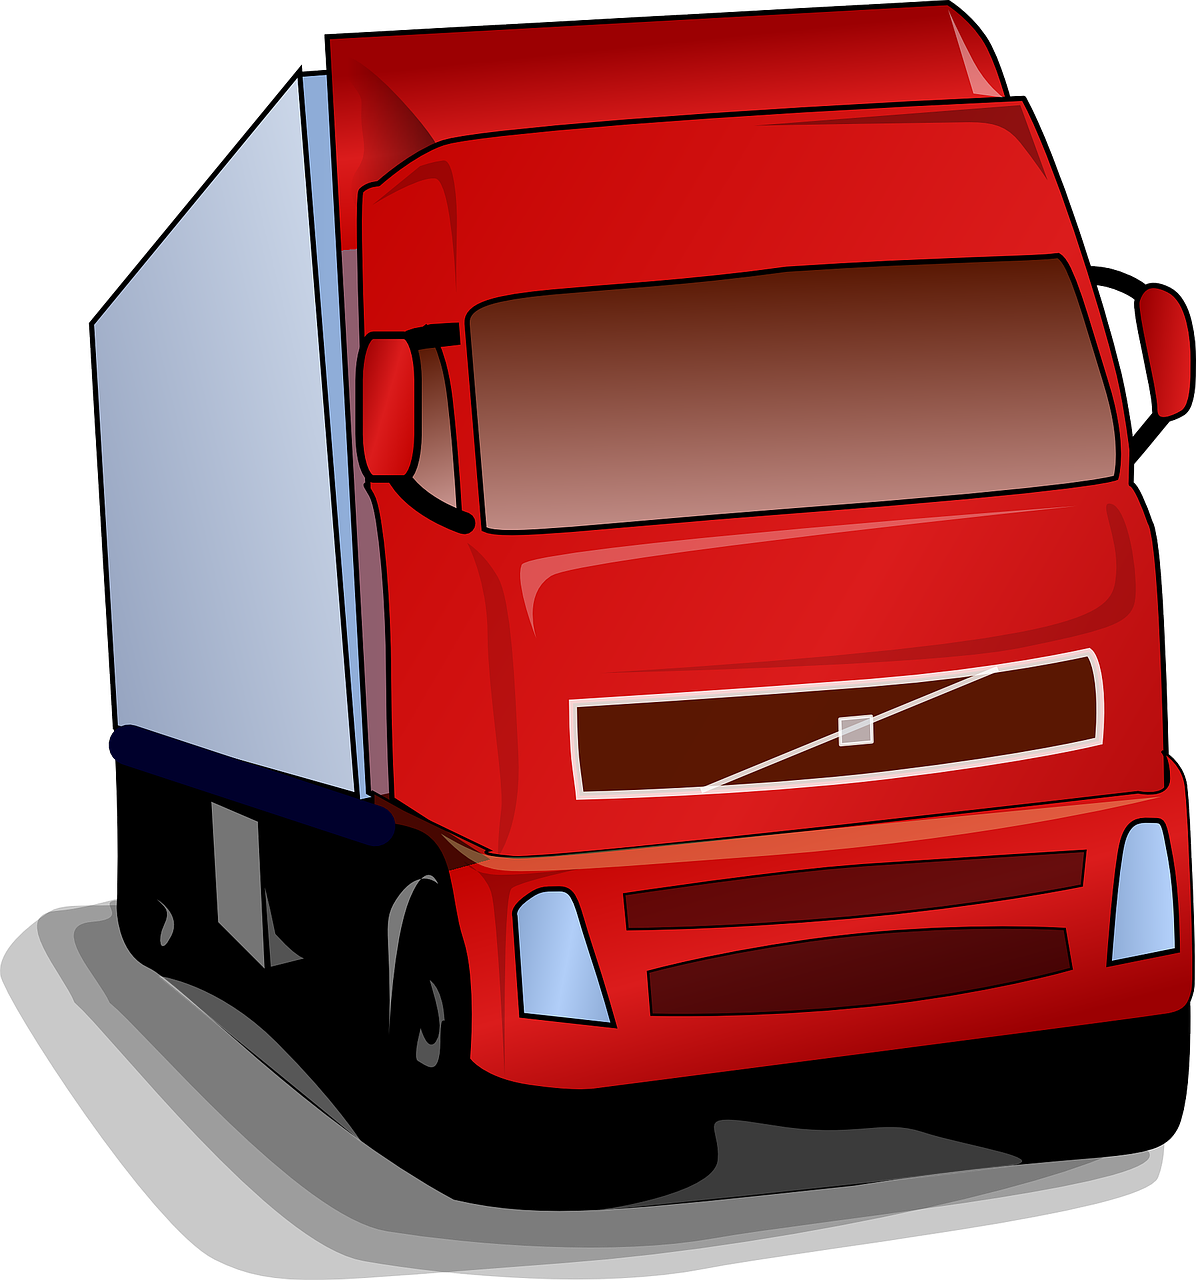 truck, lorry, red